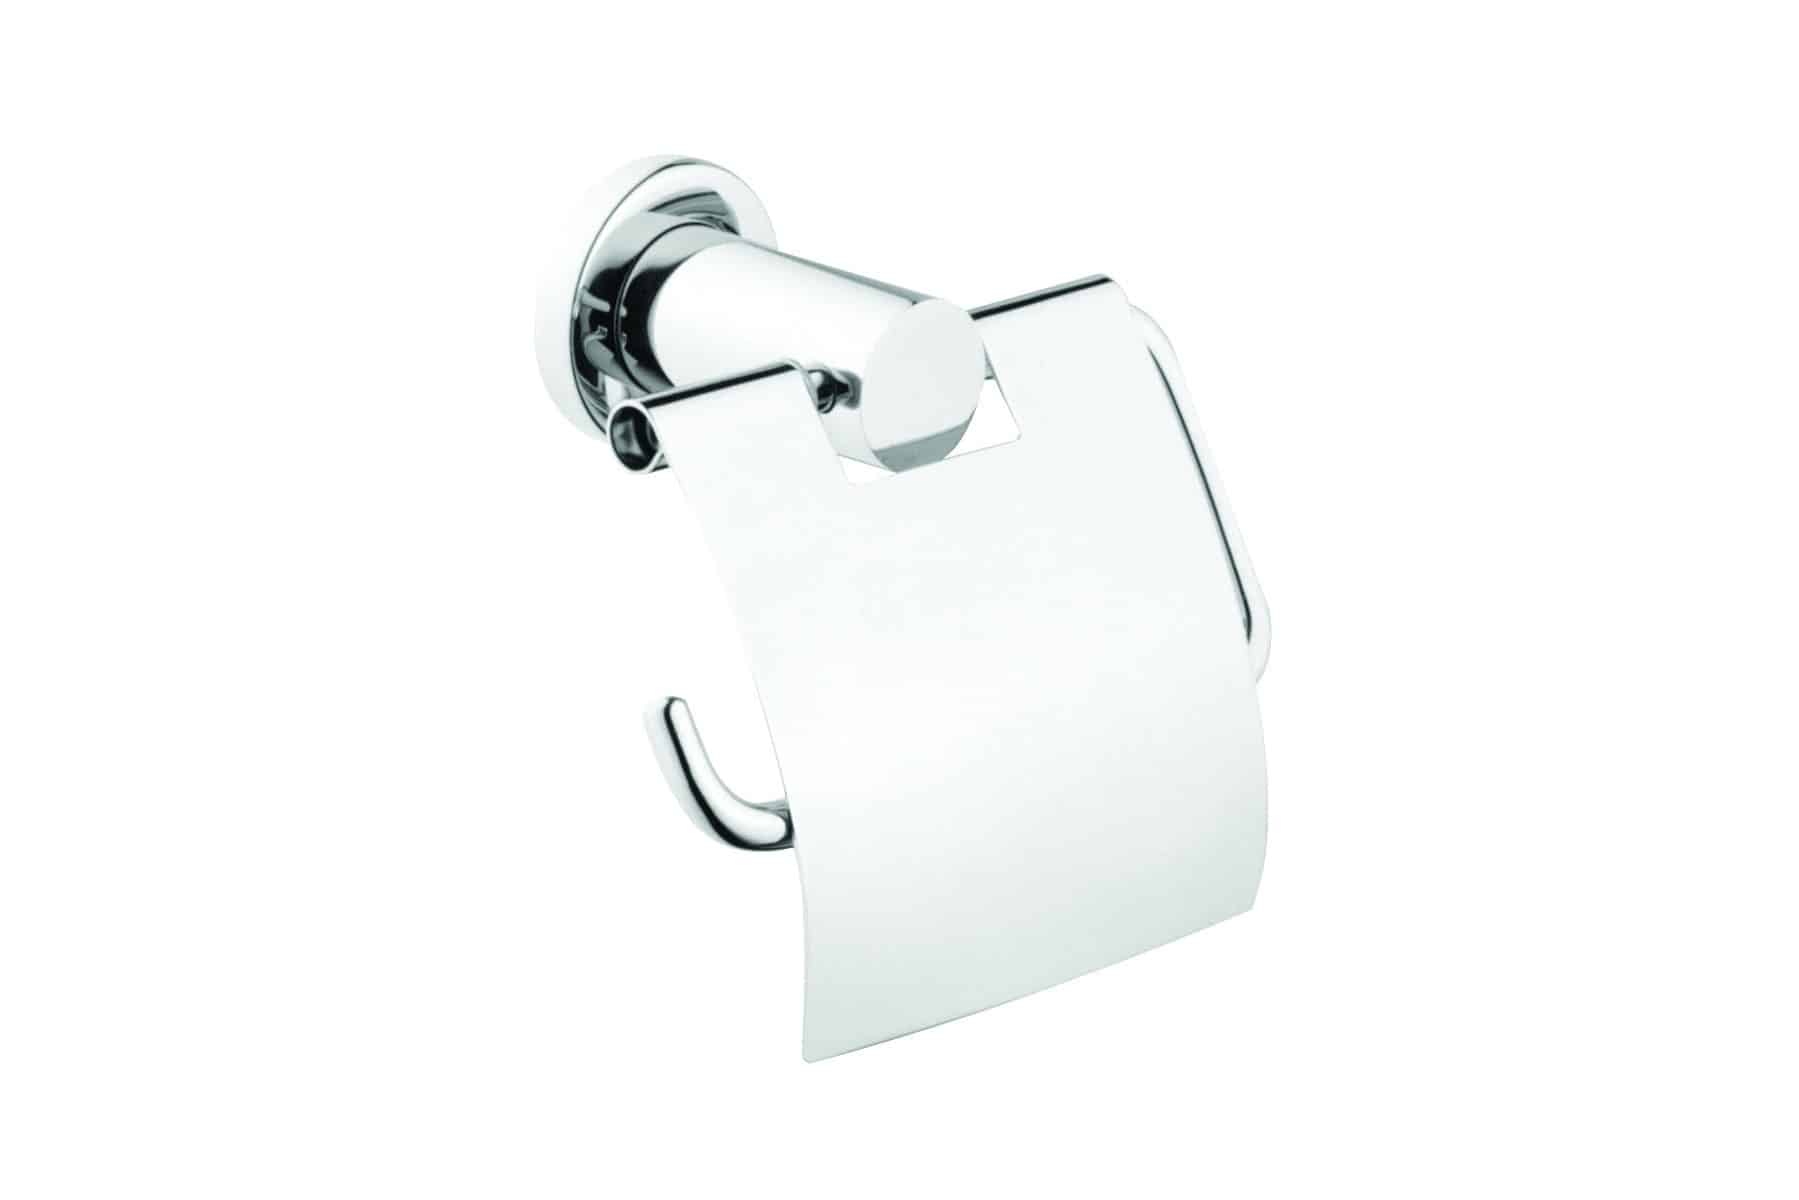 Ilia Roll Holder (with Cover)